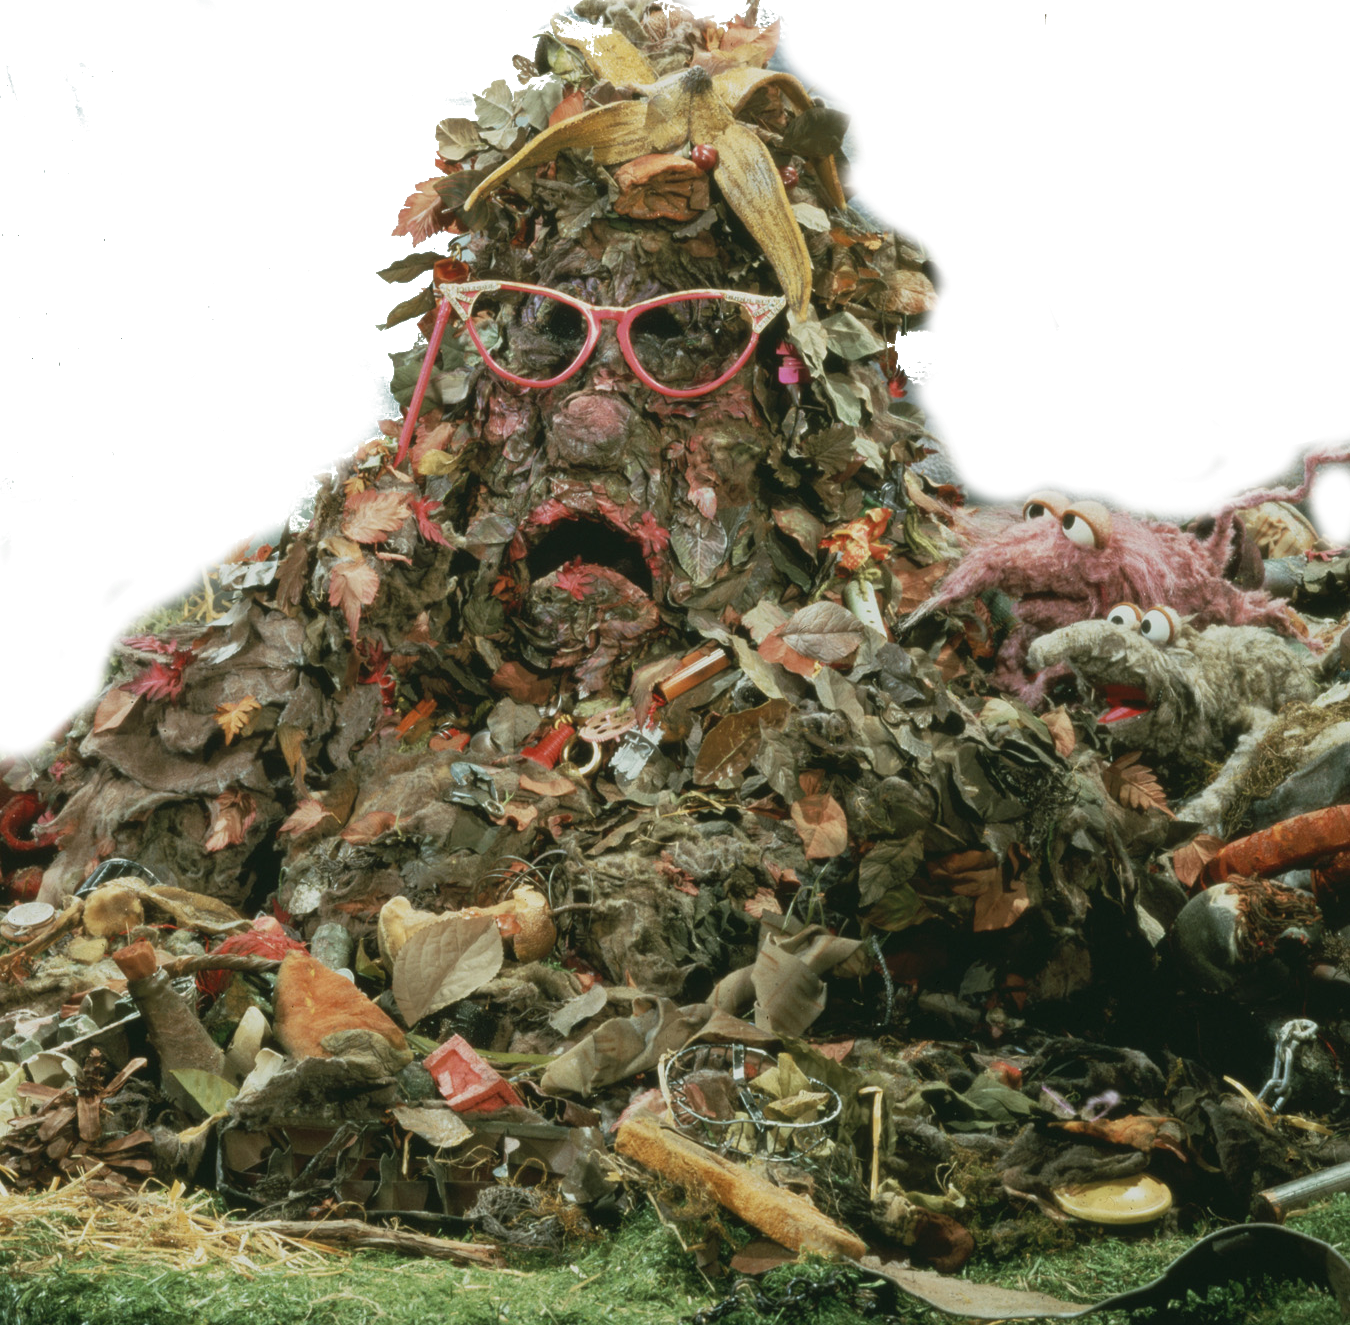 Trash pile png. Weekly muppet wednesdays marjory